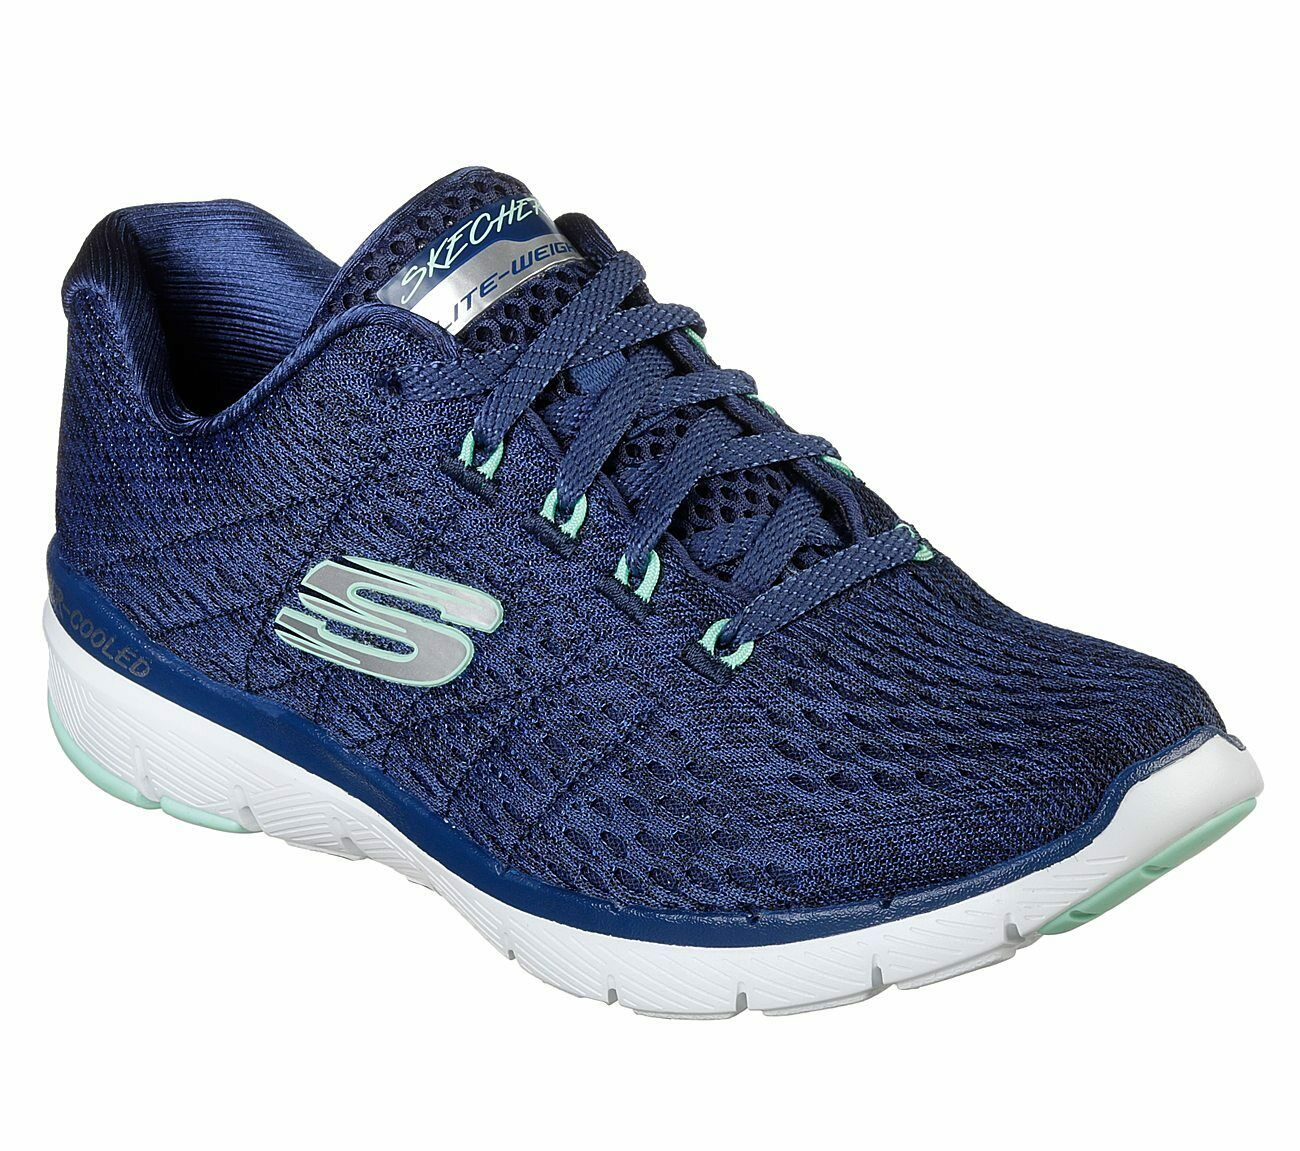 Details about Skechers Flex Appeal 3.0 Satellites Trainers Sporty Melange Shoes Womens 13064